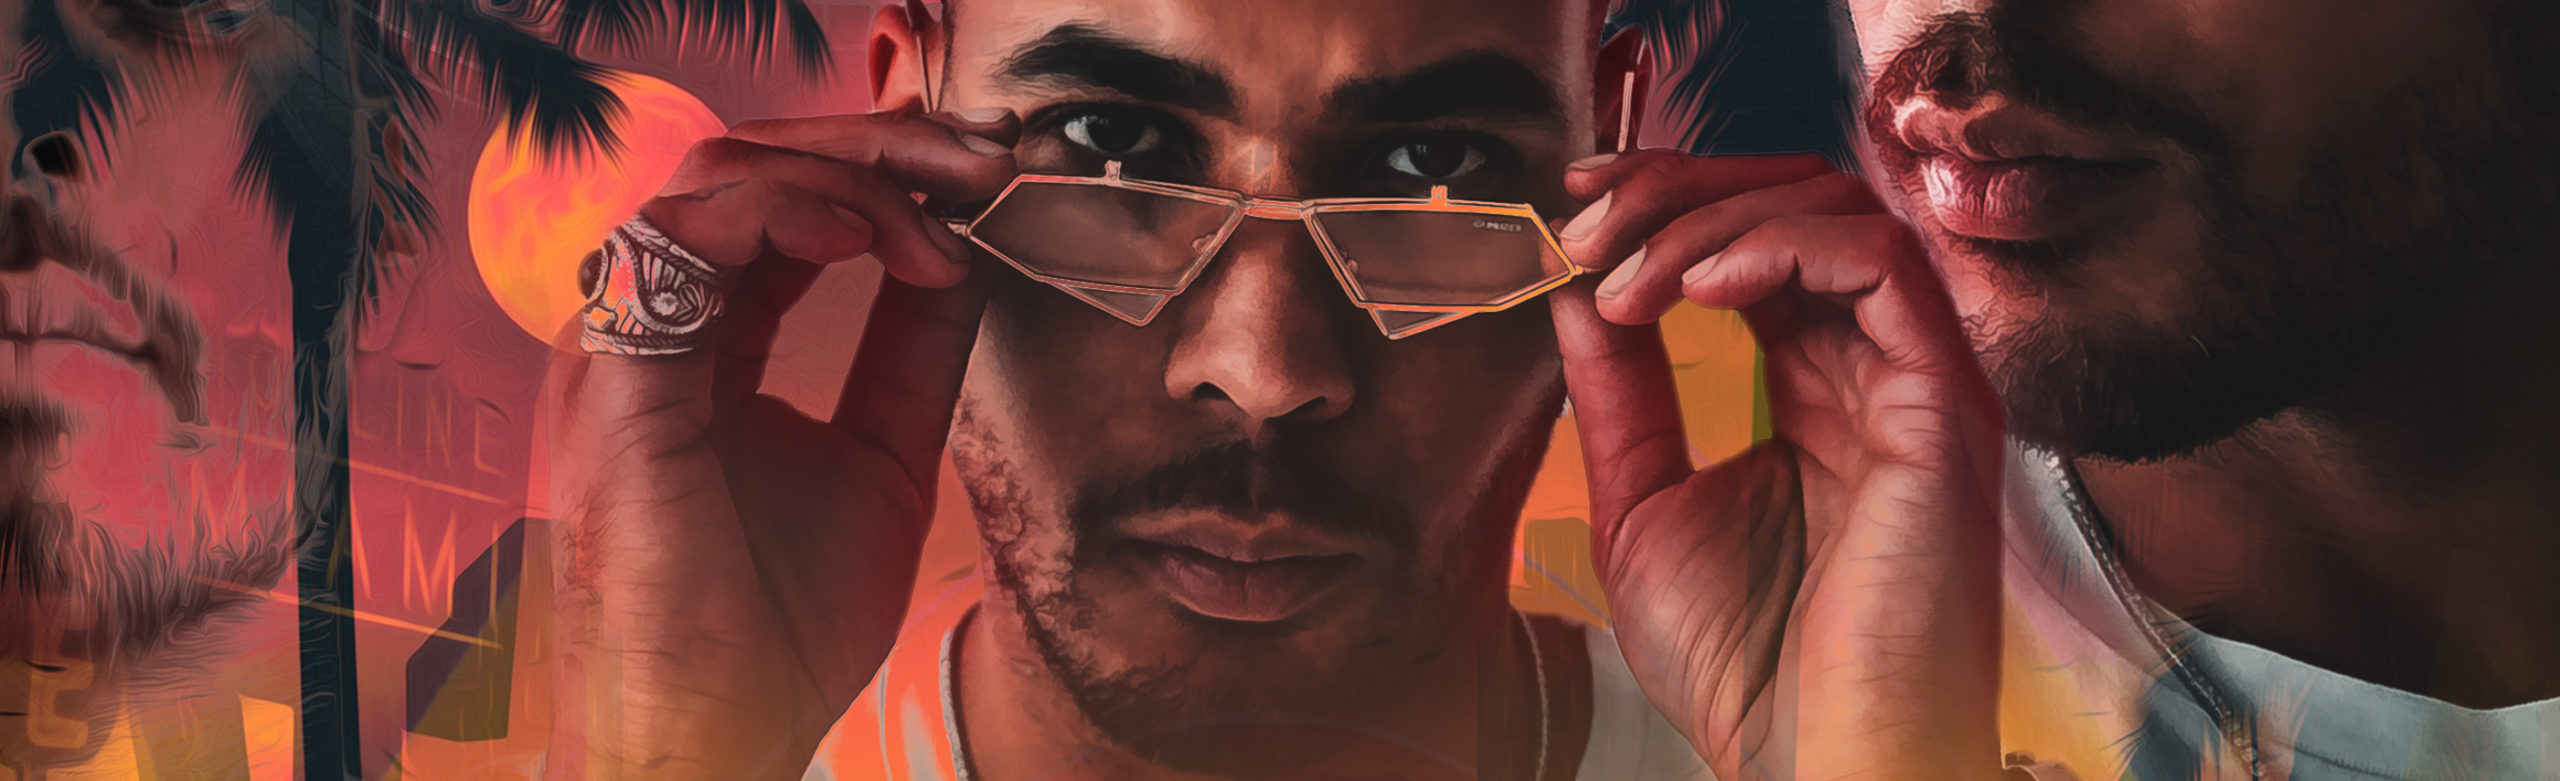 Event Info: TroyBoi at the Wilma 2019 Image